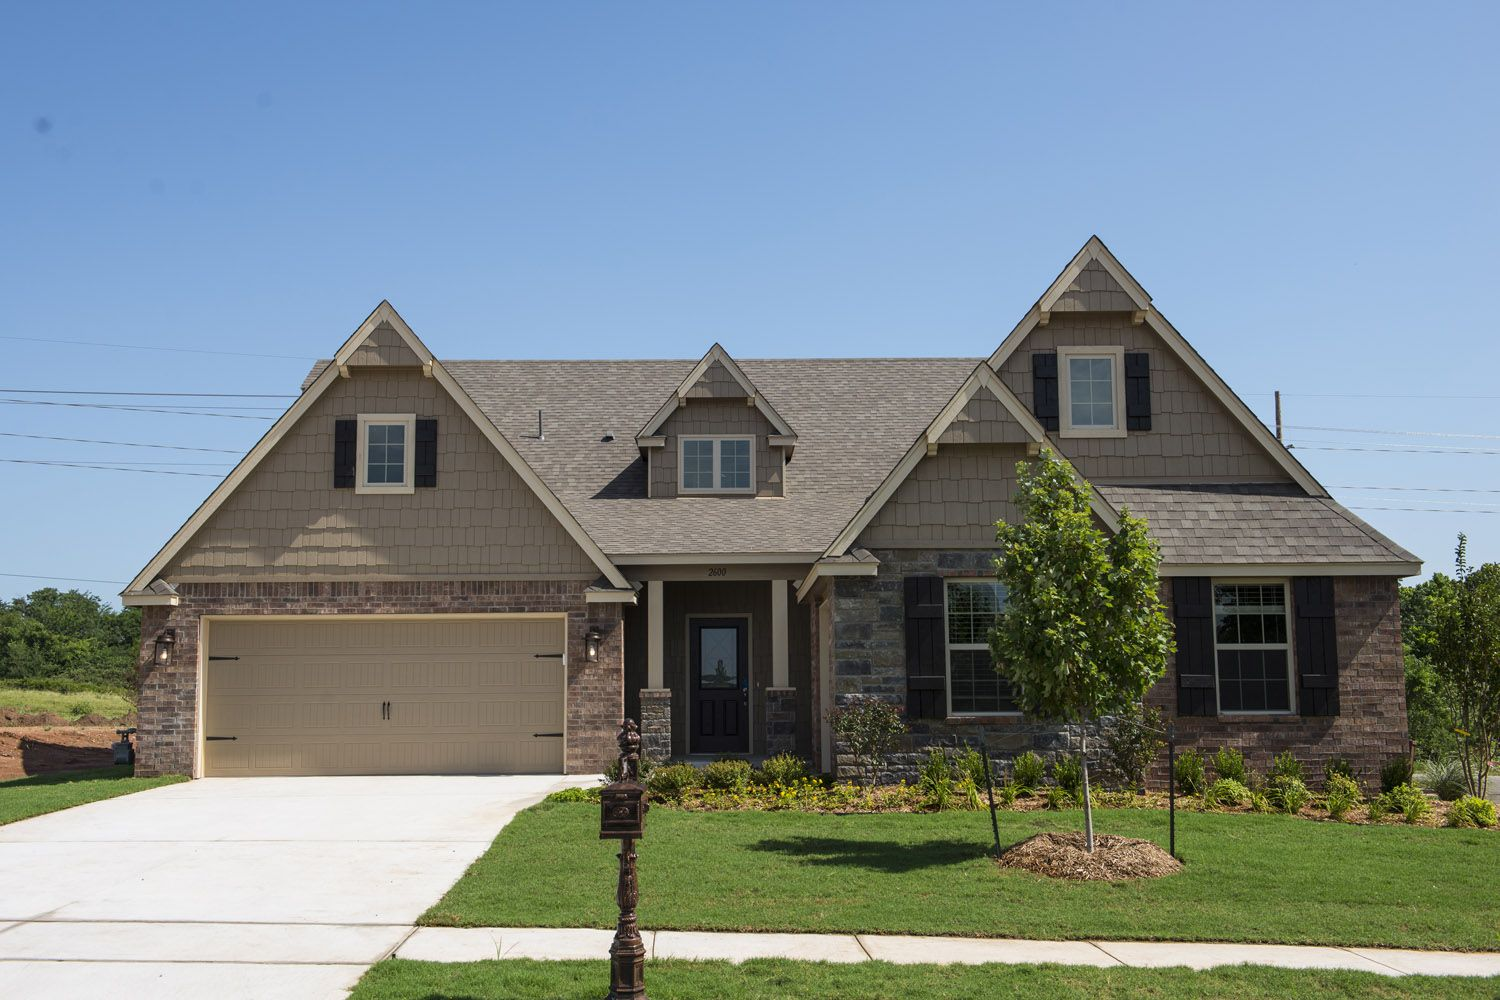 Simmons Homes Bailey Plan Broken Arrow Ok Home Will Be Auctioned On August 7 As A Fundraiser For Make Wish Oklahoma